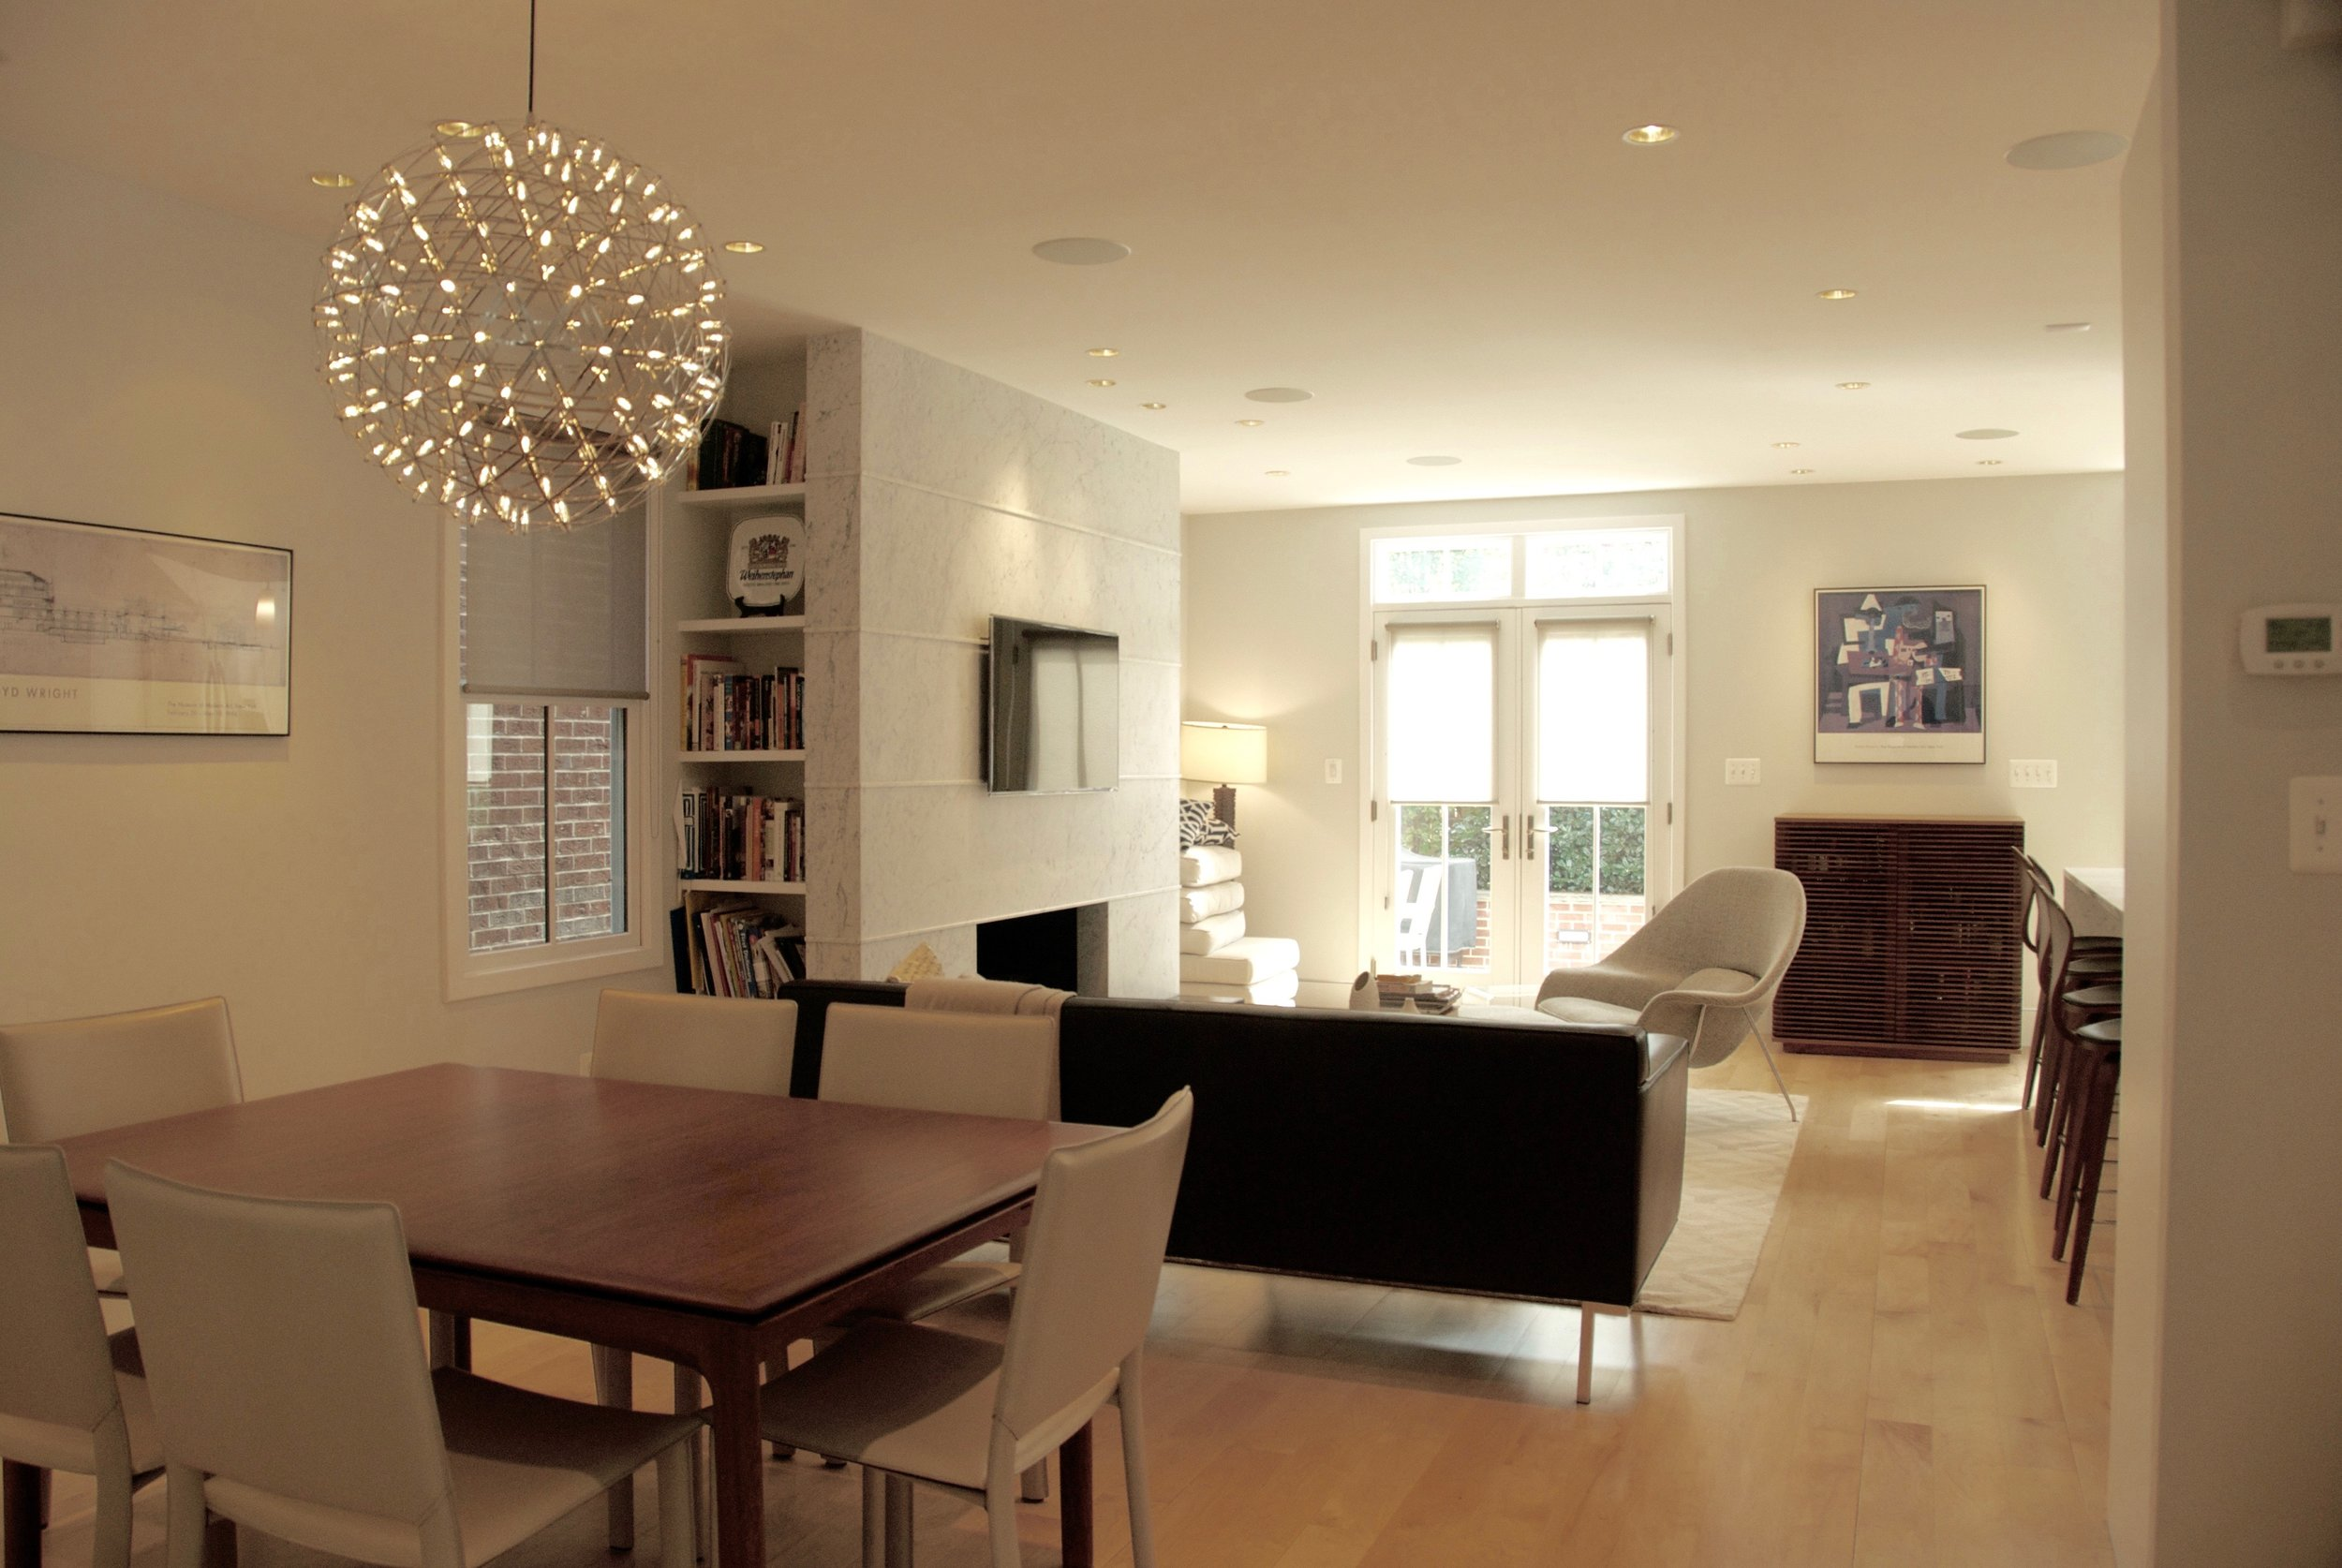 Living Room Interiors for a New House in Alexandria, VA